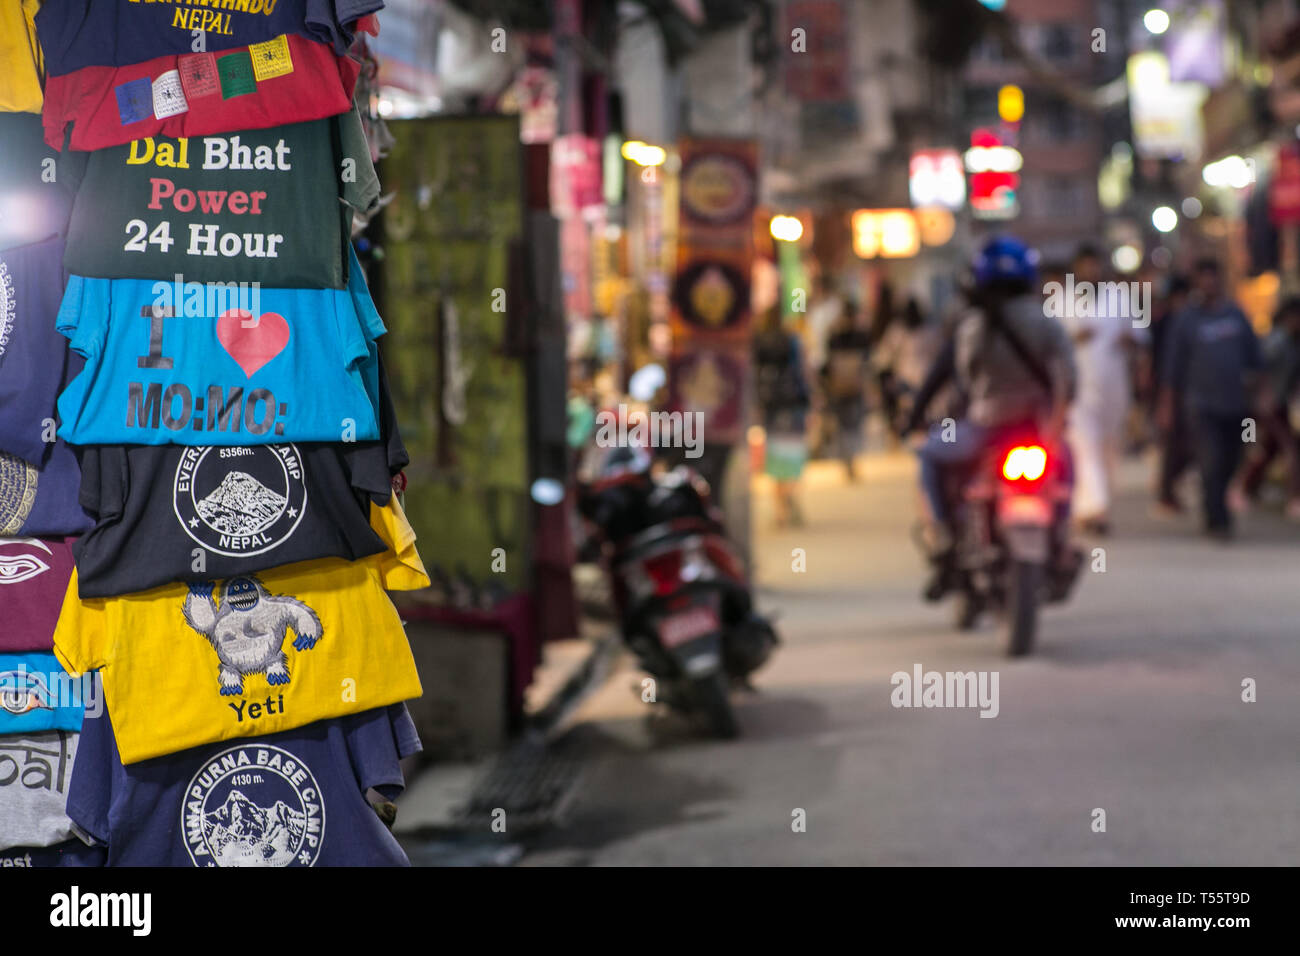 c2bc673f Funny T Shirts Stock Photos & Funny T Shirts Stock Images - Alamy